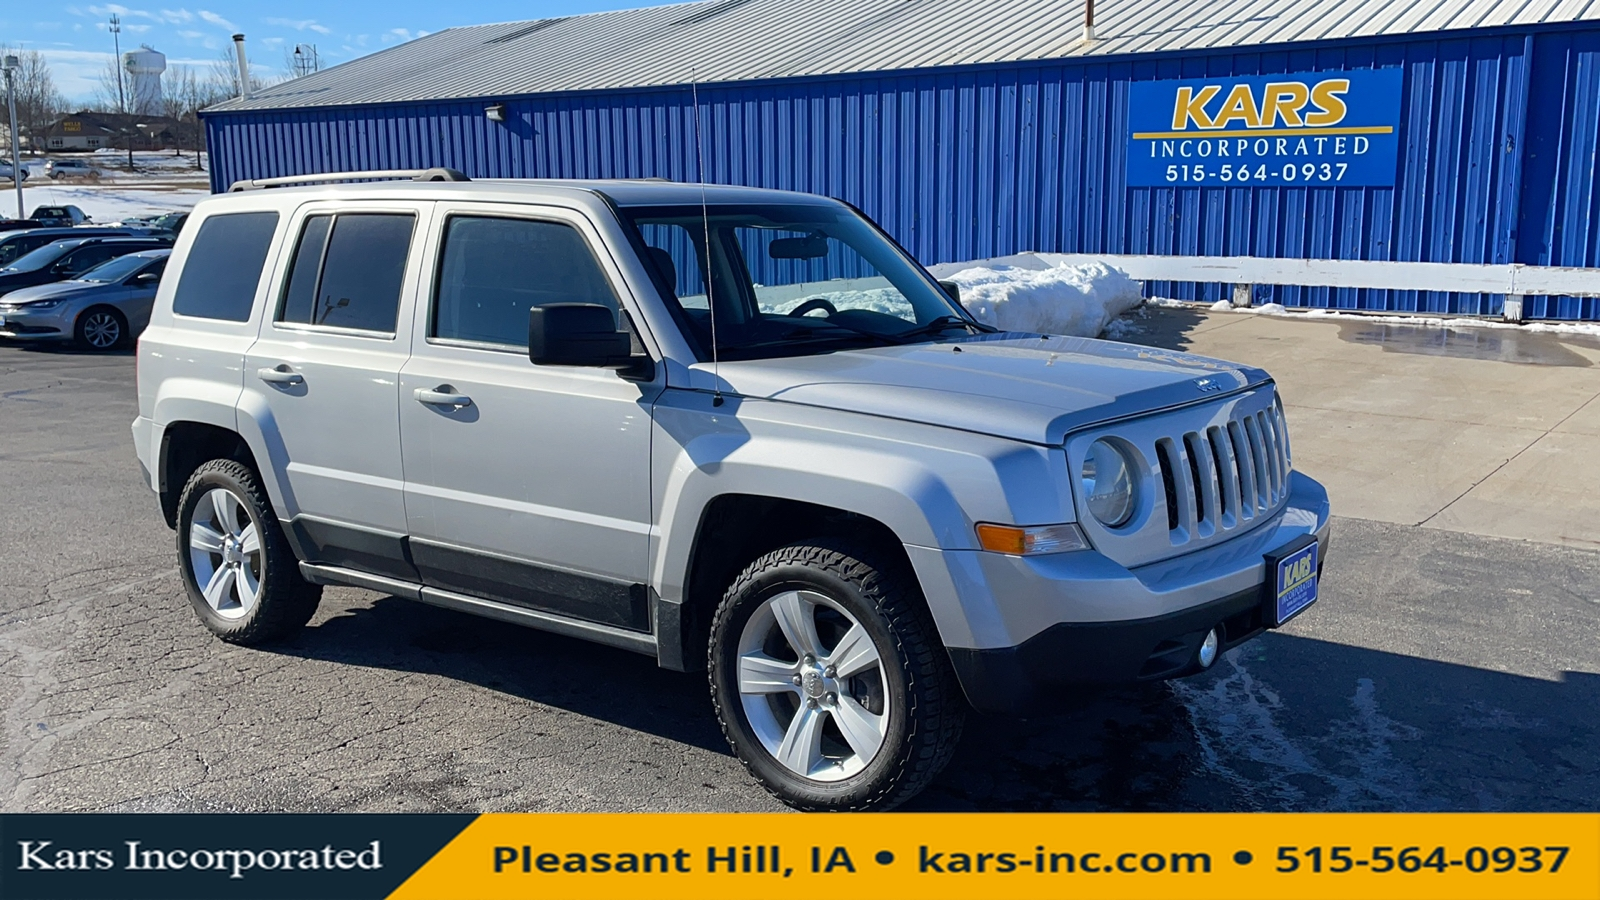 2011 Jeep Patriot  - Kars Incorporated